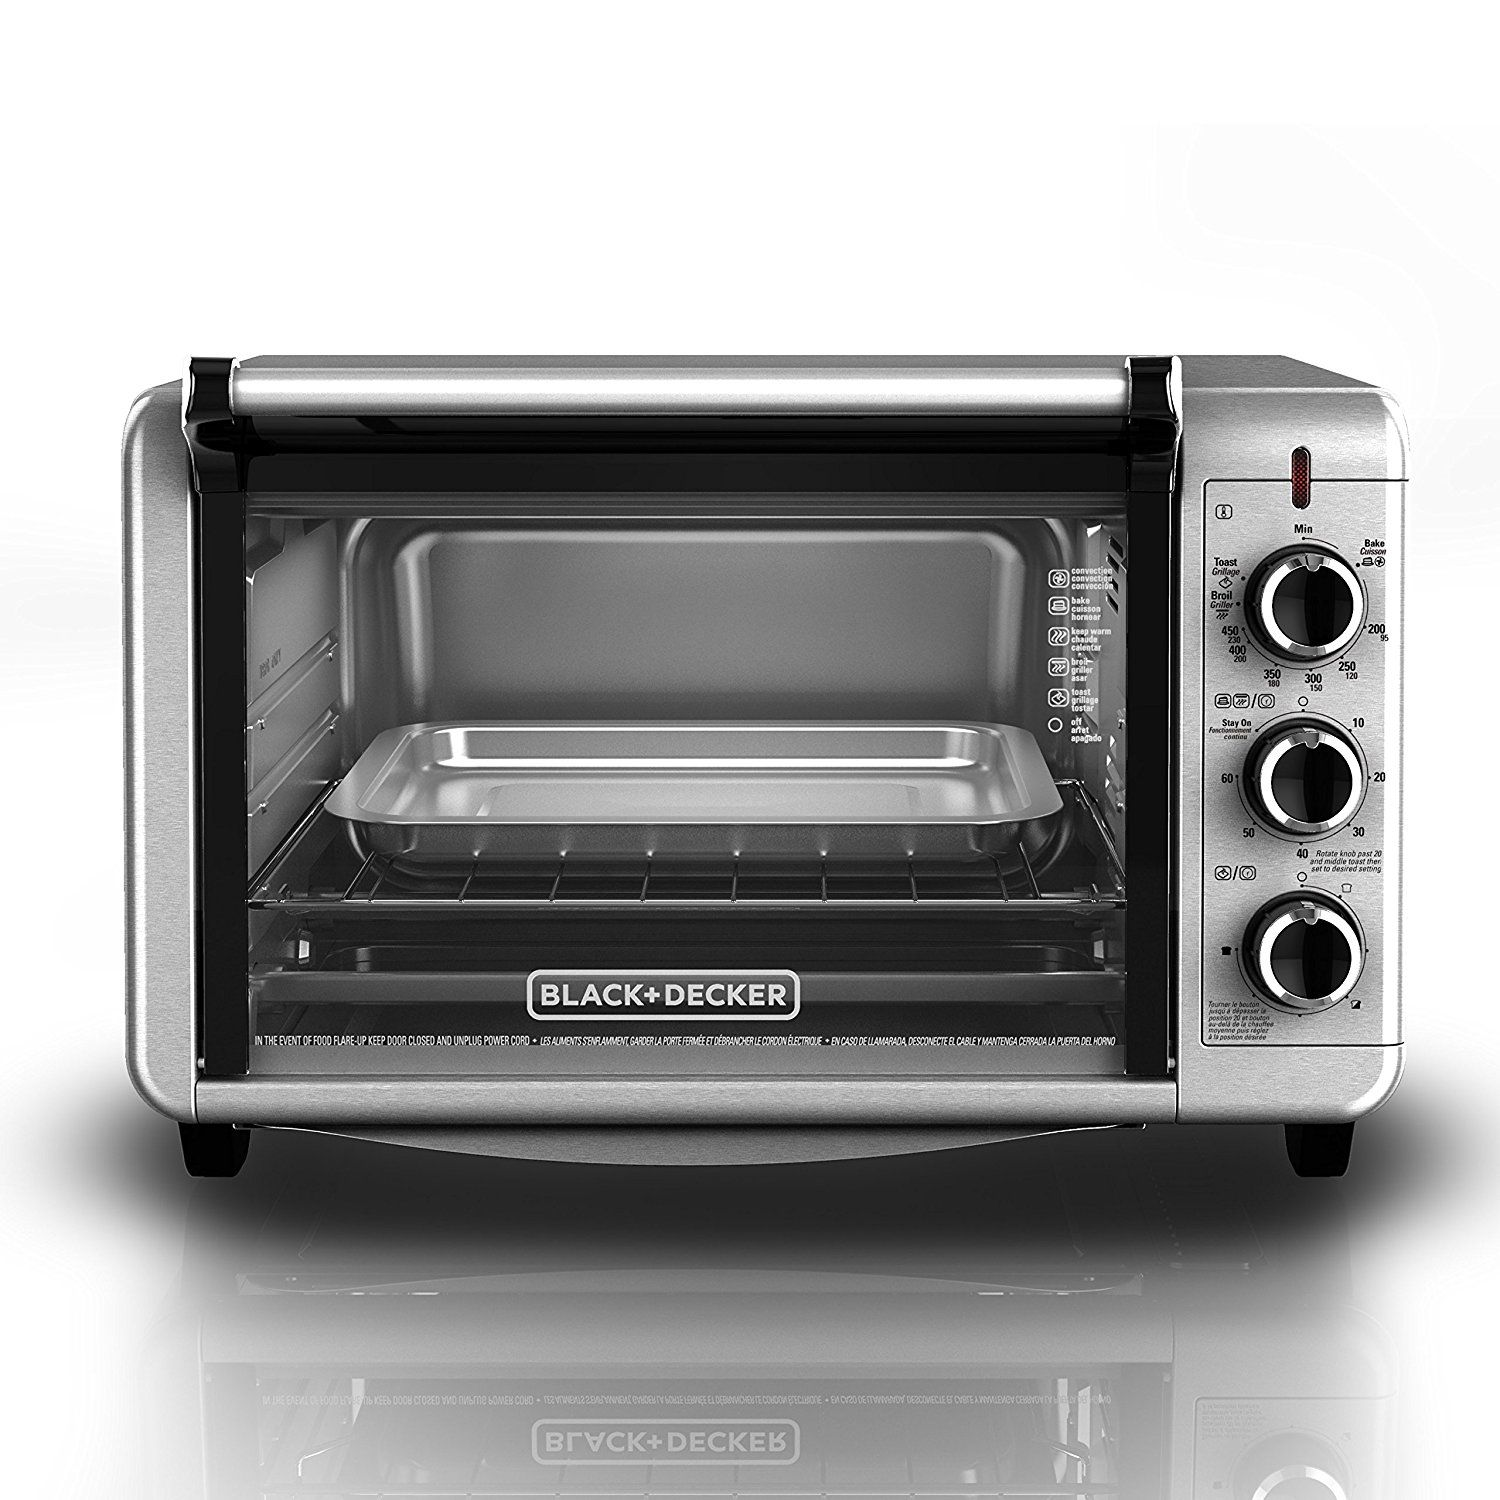 Black decker tossd slice convection countertop toaster oven